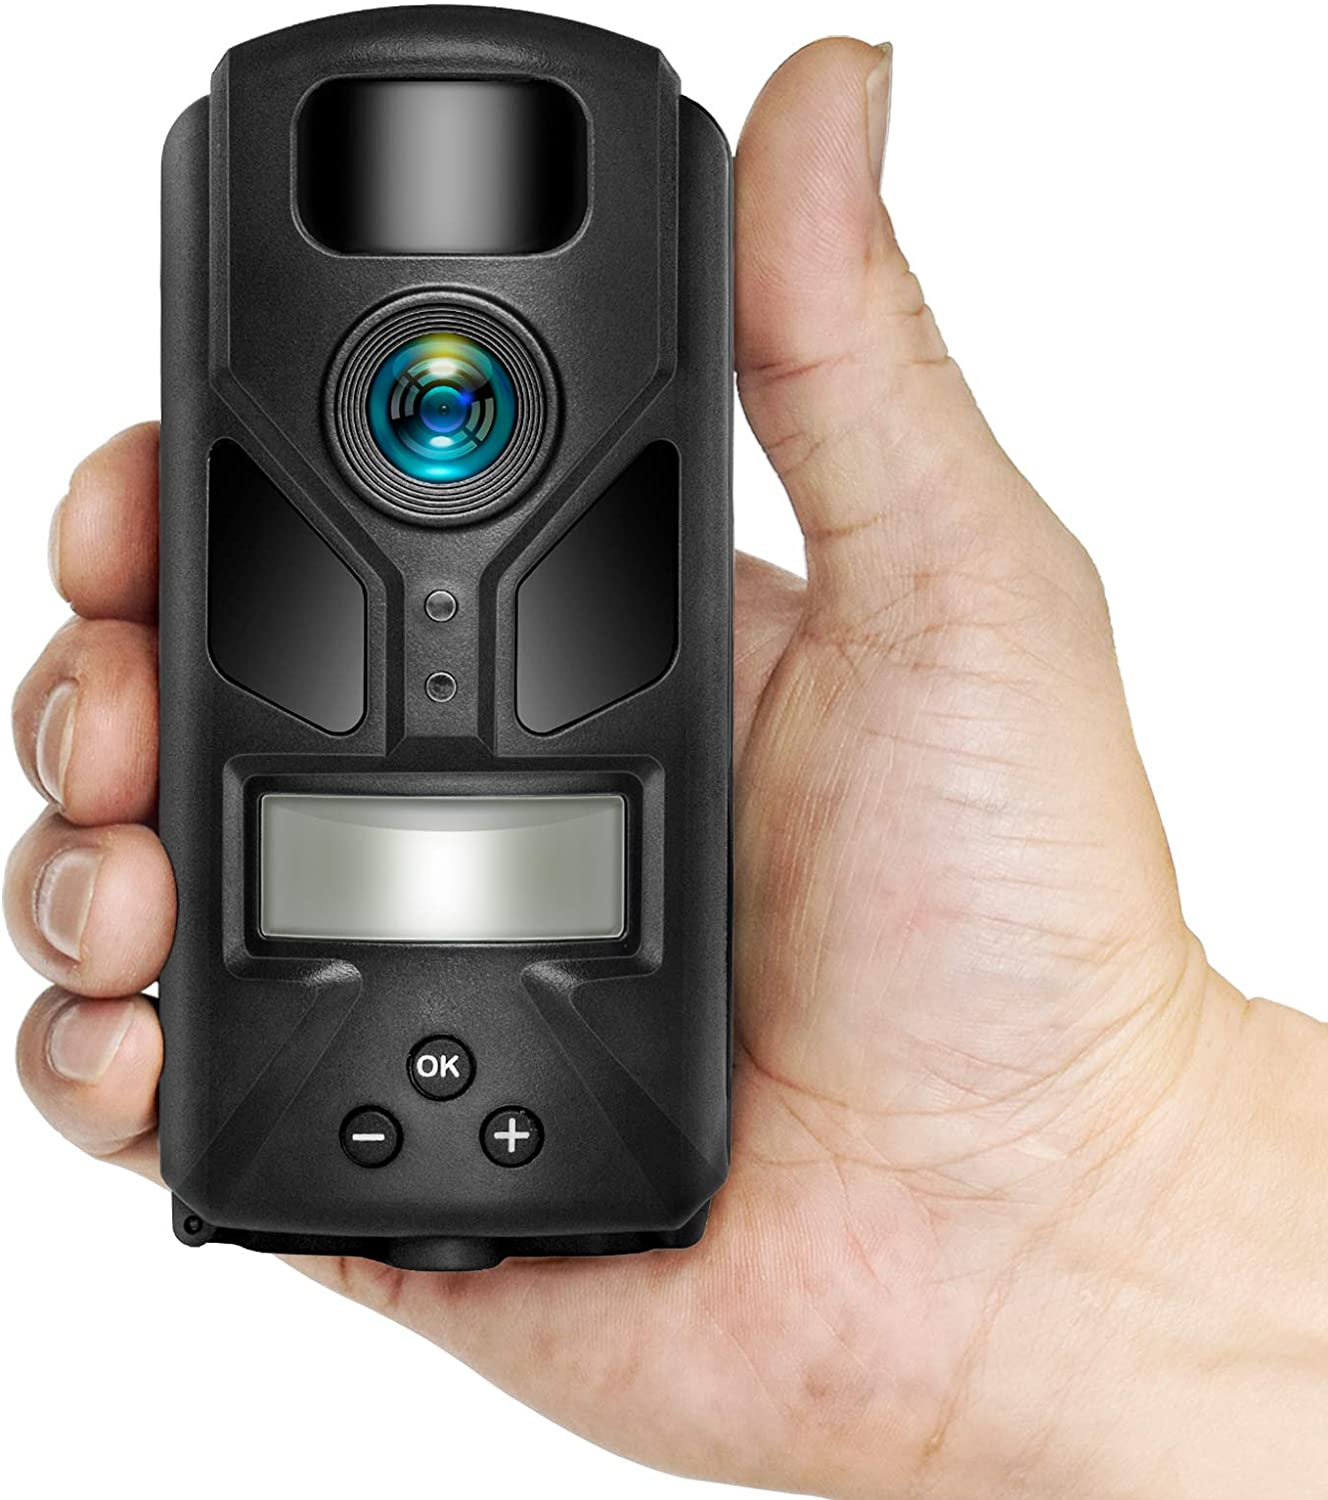 Mini Trail Camera 20MP 720P with Night Vision Motion Activated Waterproof Hunting Camera with 940nm IR LEDs with LCD Display for Outdoor Wildlife Monitoring and Home Security by OUTDOOR EXPERT